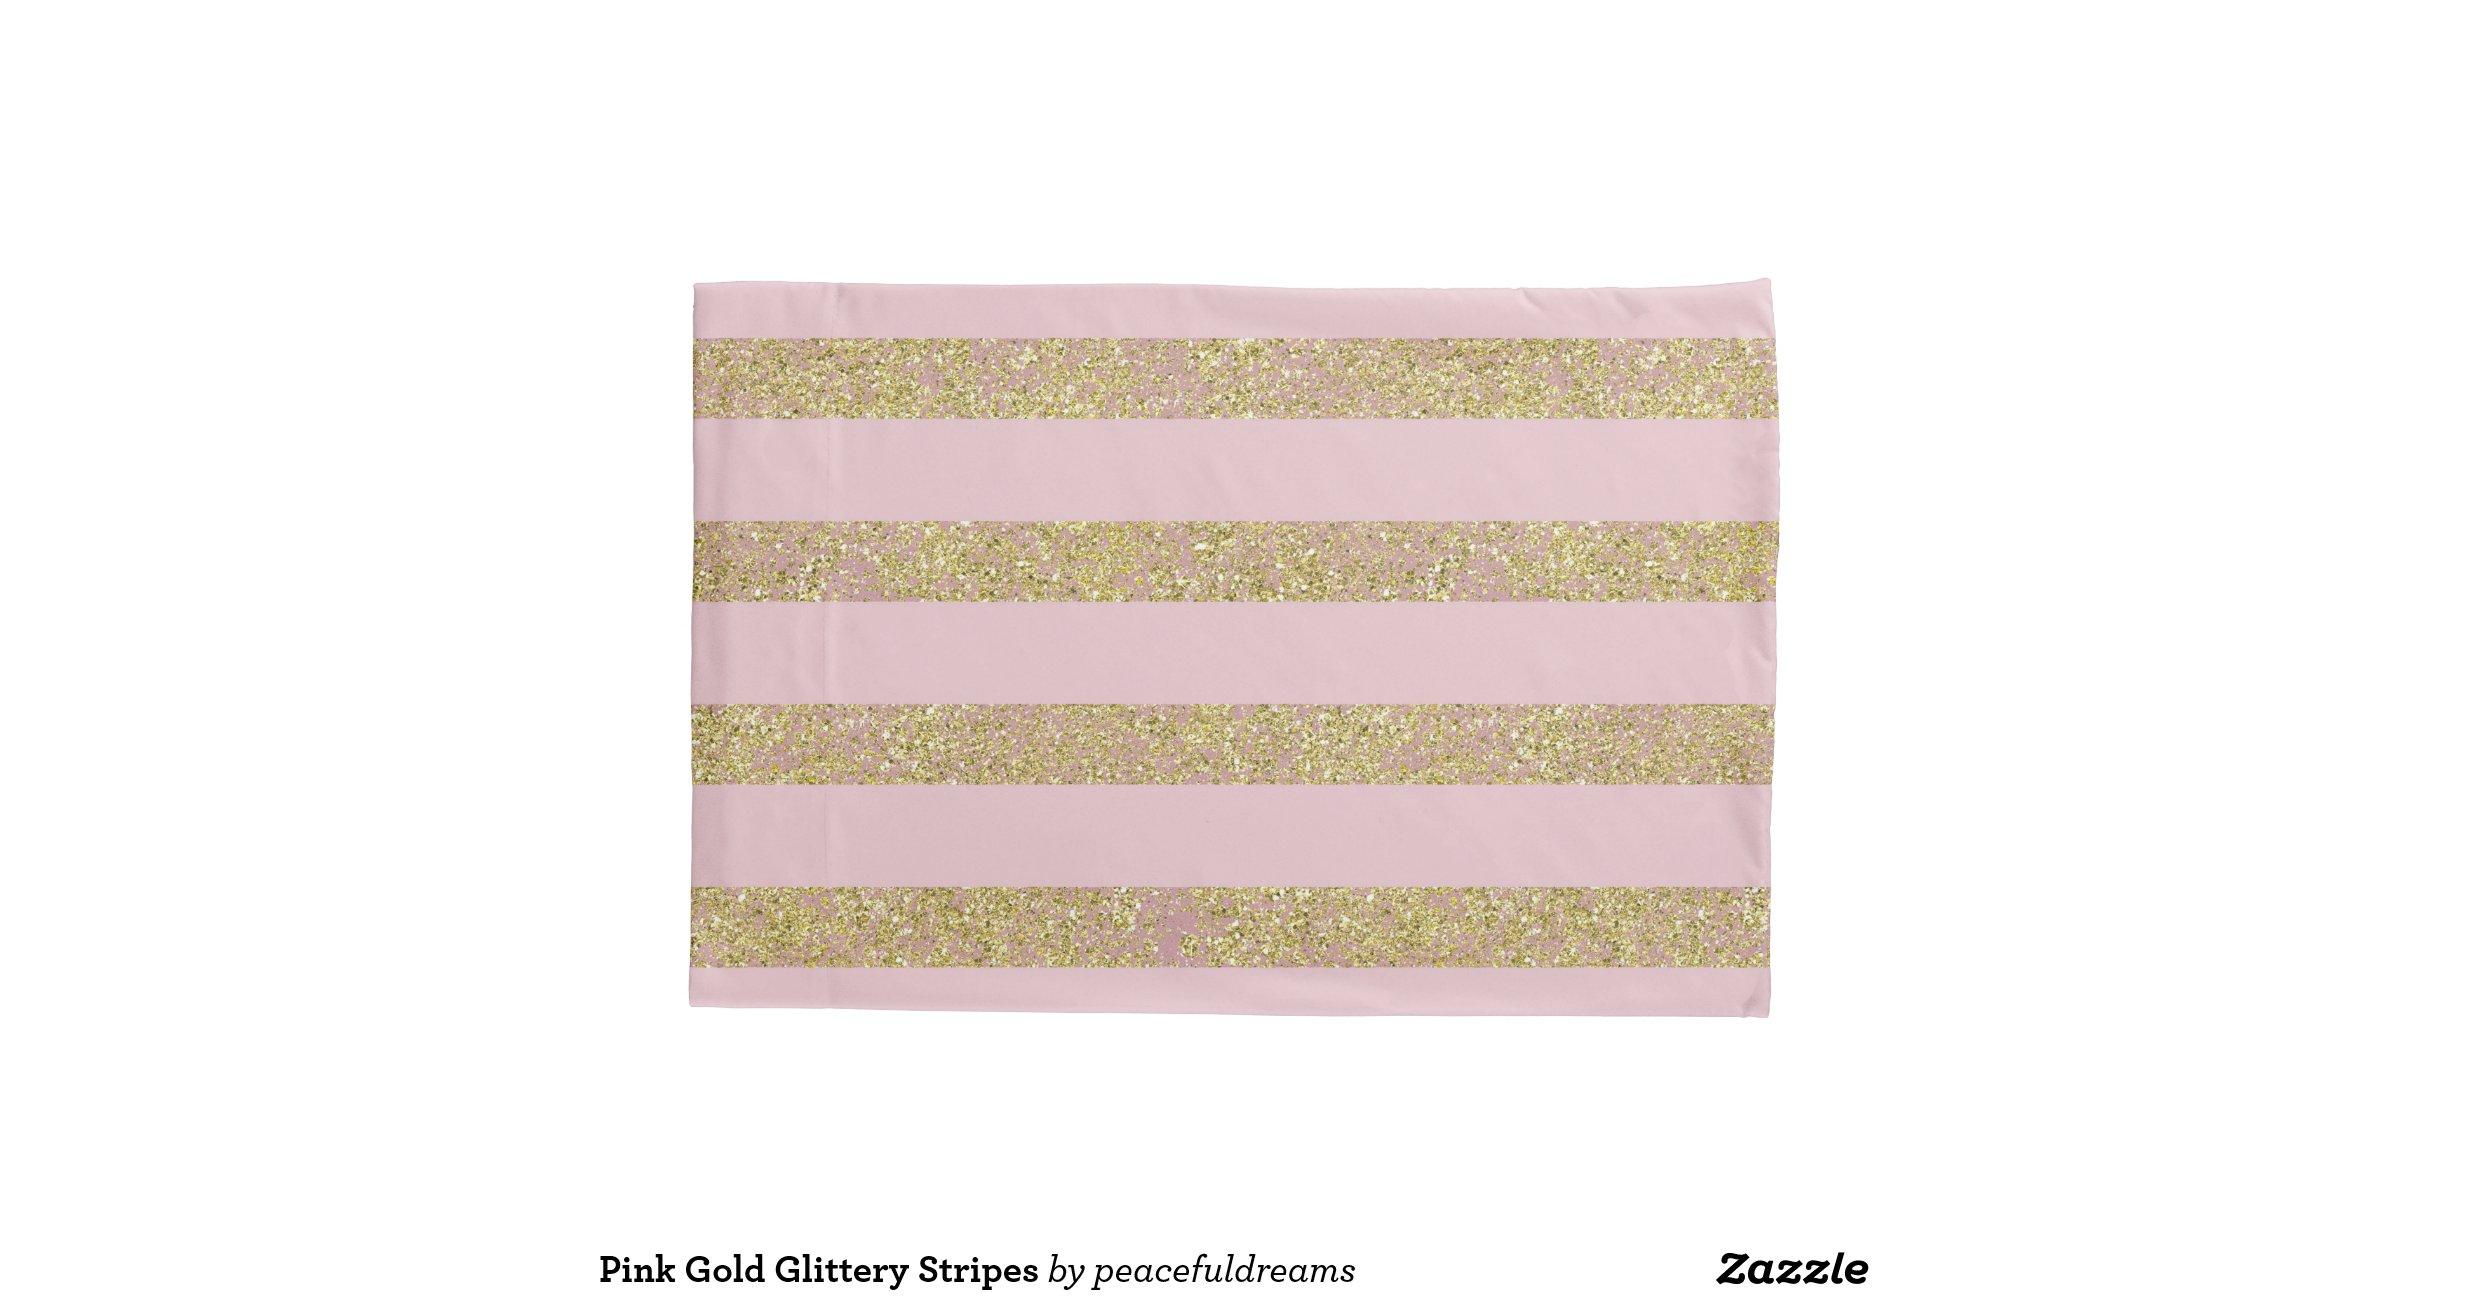 standard pillow case size with Pink Gold Glittery Stripes Pillowcase 256899199865545593 on Wholesale Pure White Cotton Hotel 21 60574839515 moreover Marvel Bedding Sets Sale also 301928242933 moreover Windsor Navy Ticking Stripe Duvet Cover as well Pink gold glittery stripes pillowcase 256899199865545593.